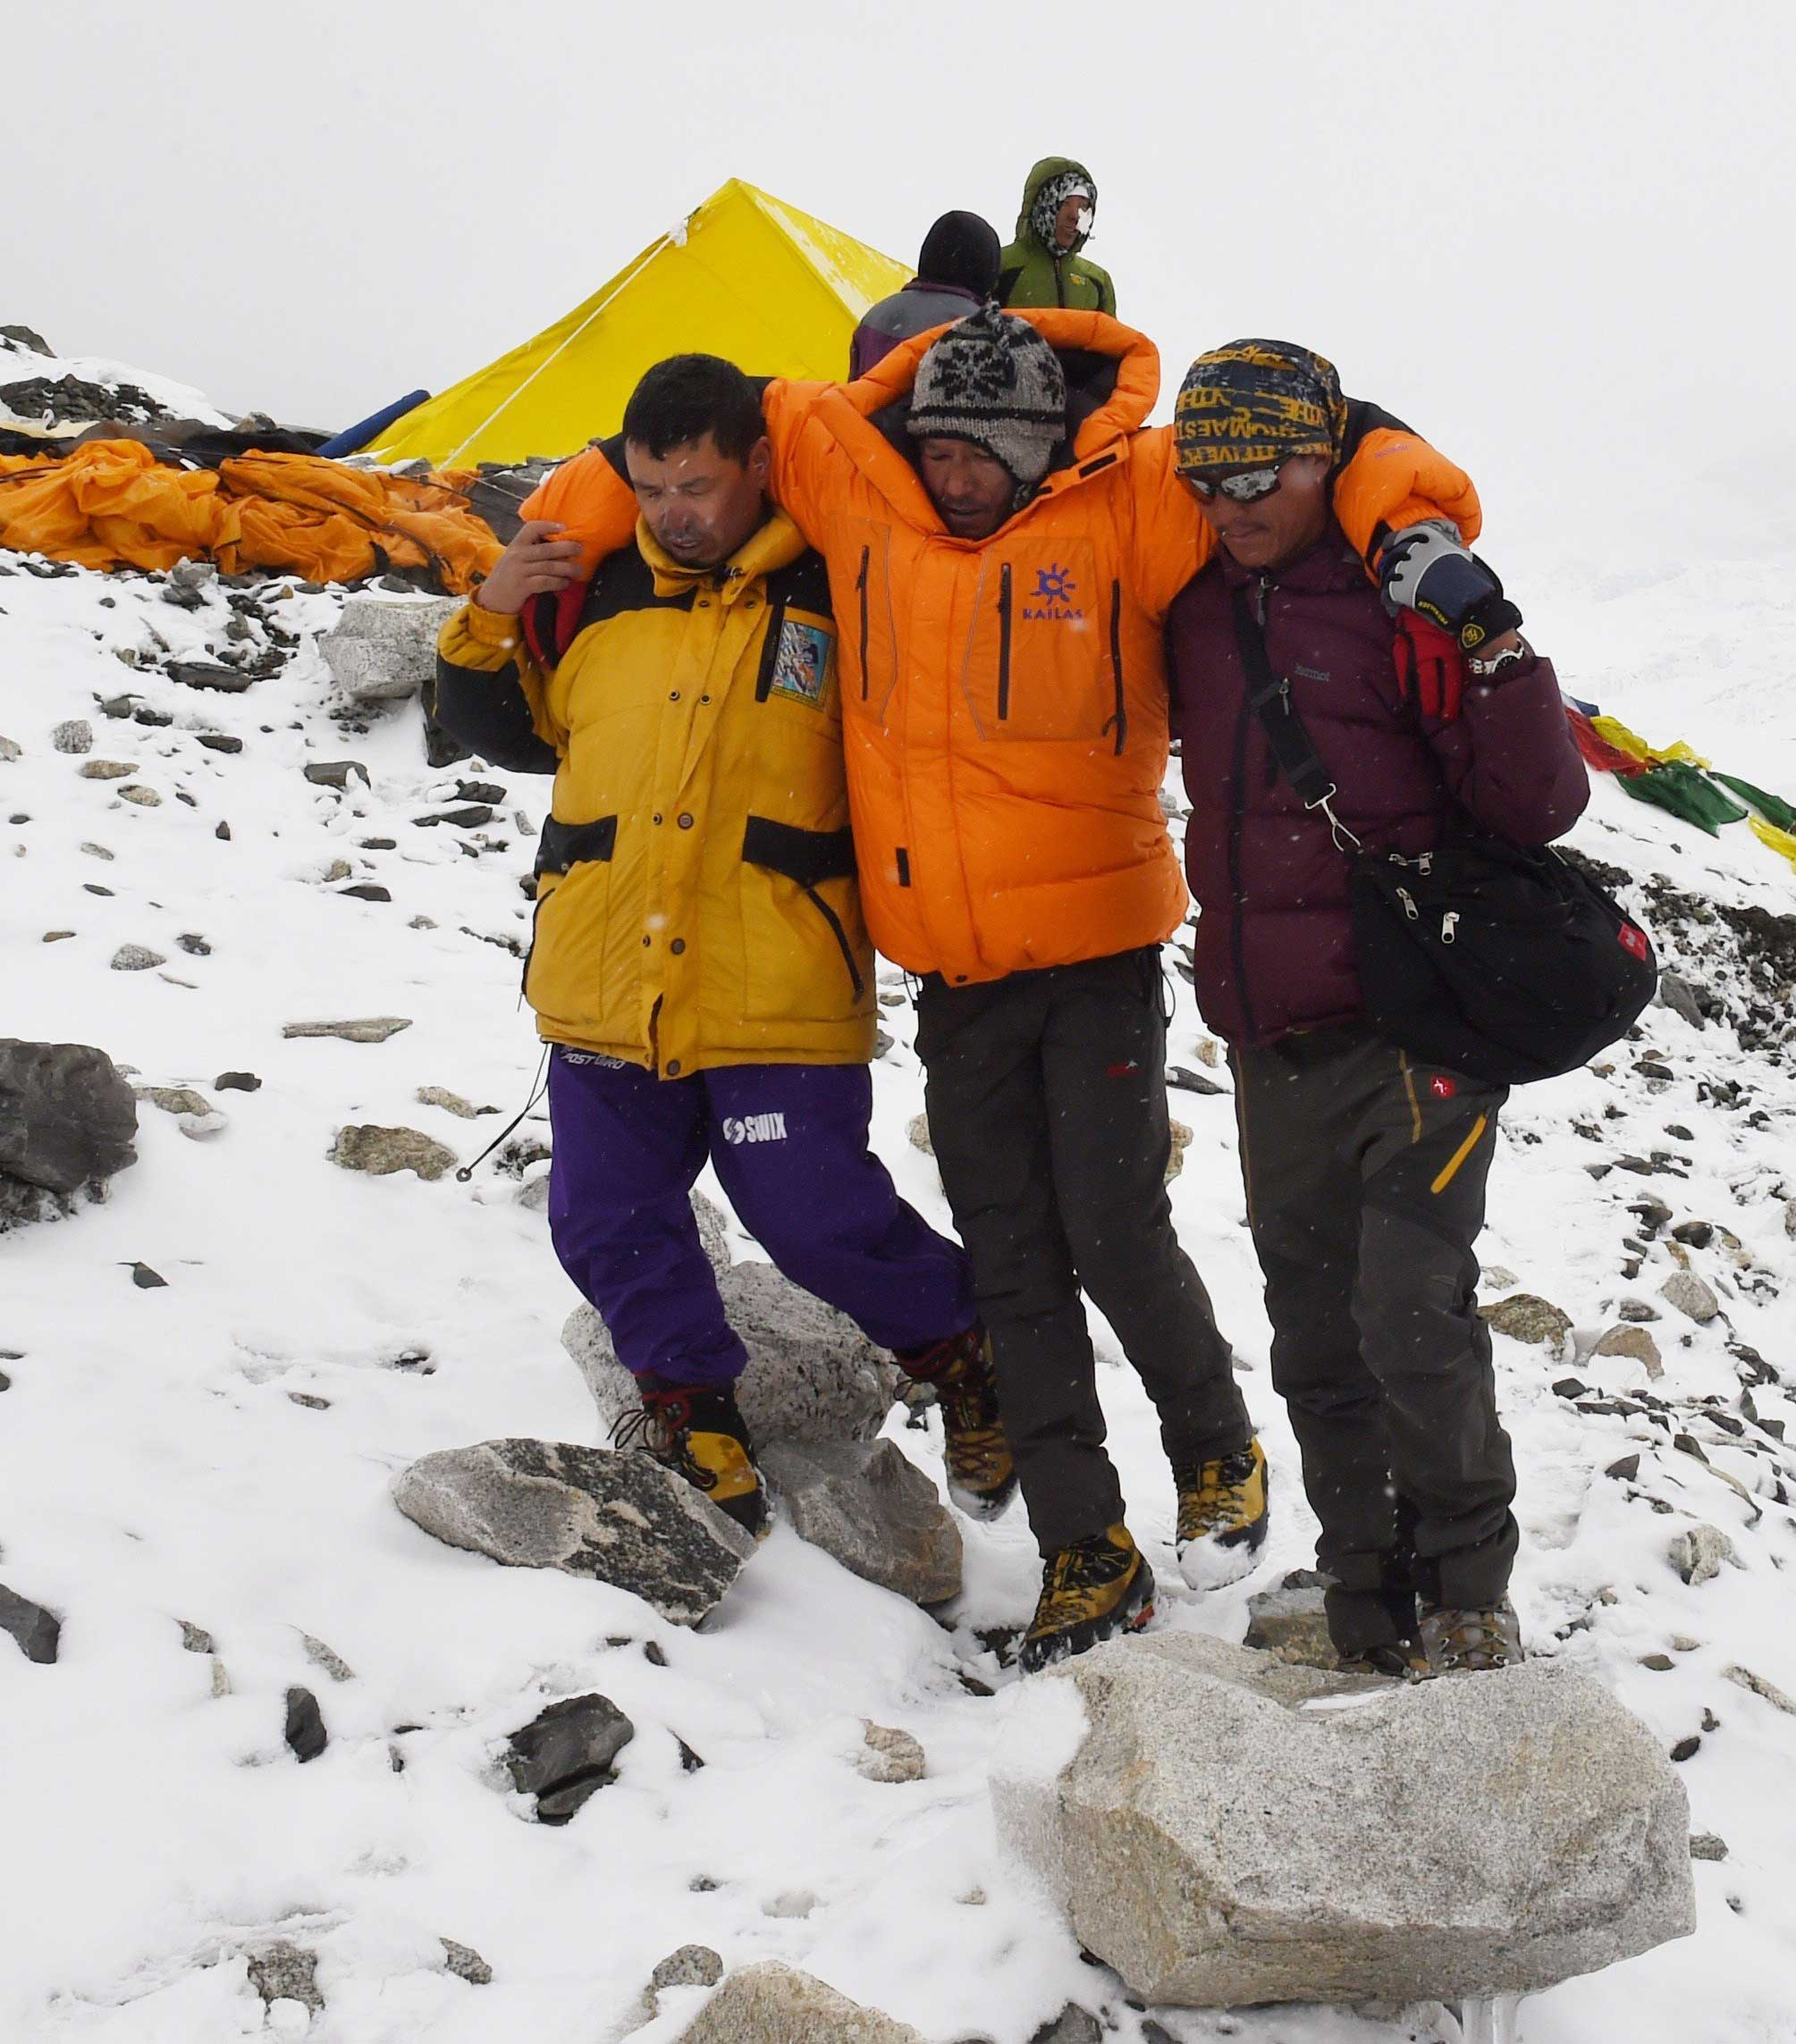 Rescuers assist an injured person at Everest Base Camp after an avalanche was triggered by an earthquake outside Kathmandu, Nepal, on April 25, 2015.